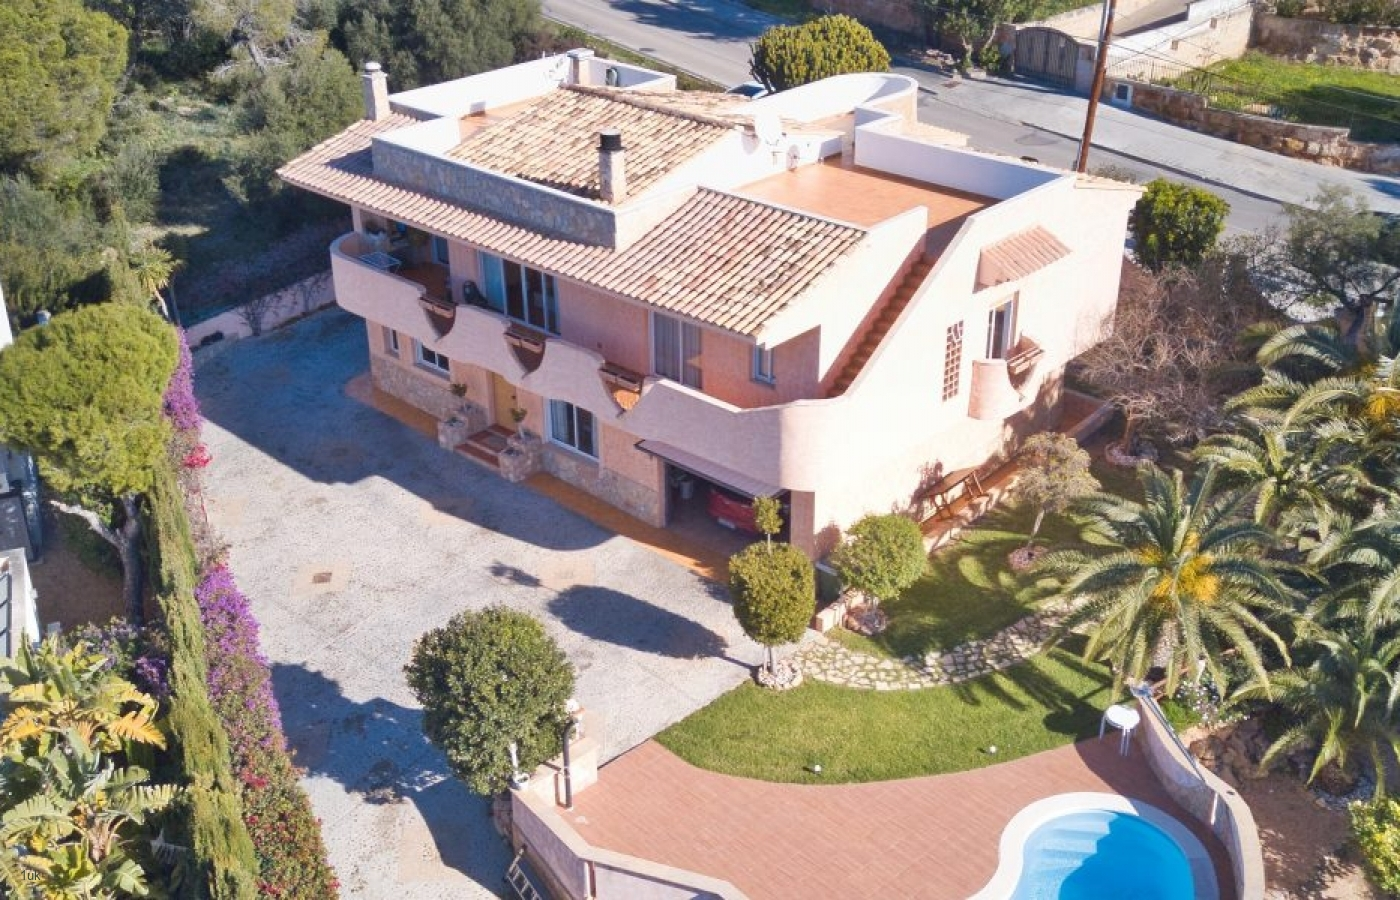 523_drone_view_of_santa_ponsa_villa View this excellent example of a Traditional Spanish Villa in Mallorca 1 home